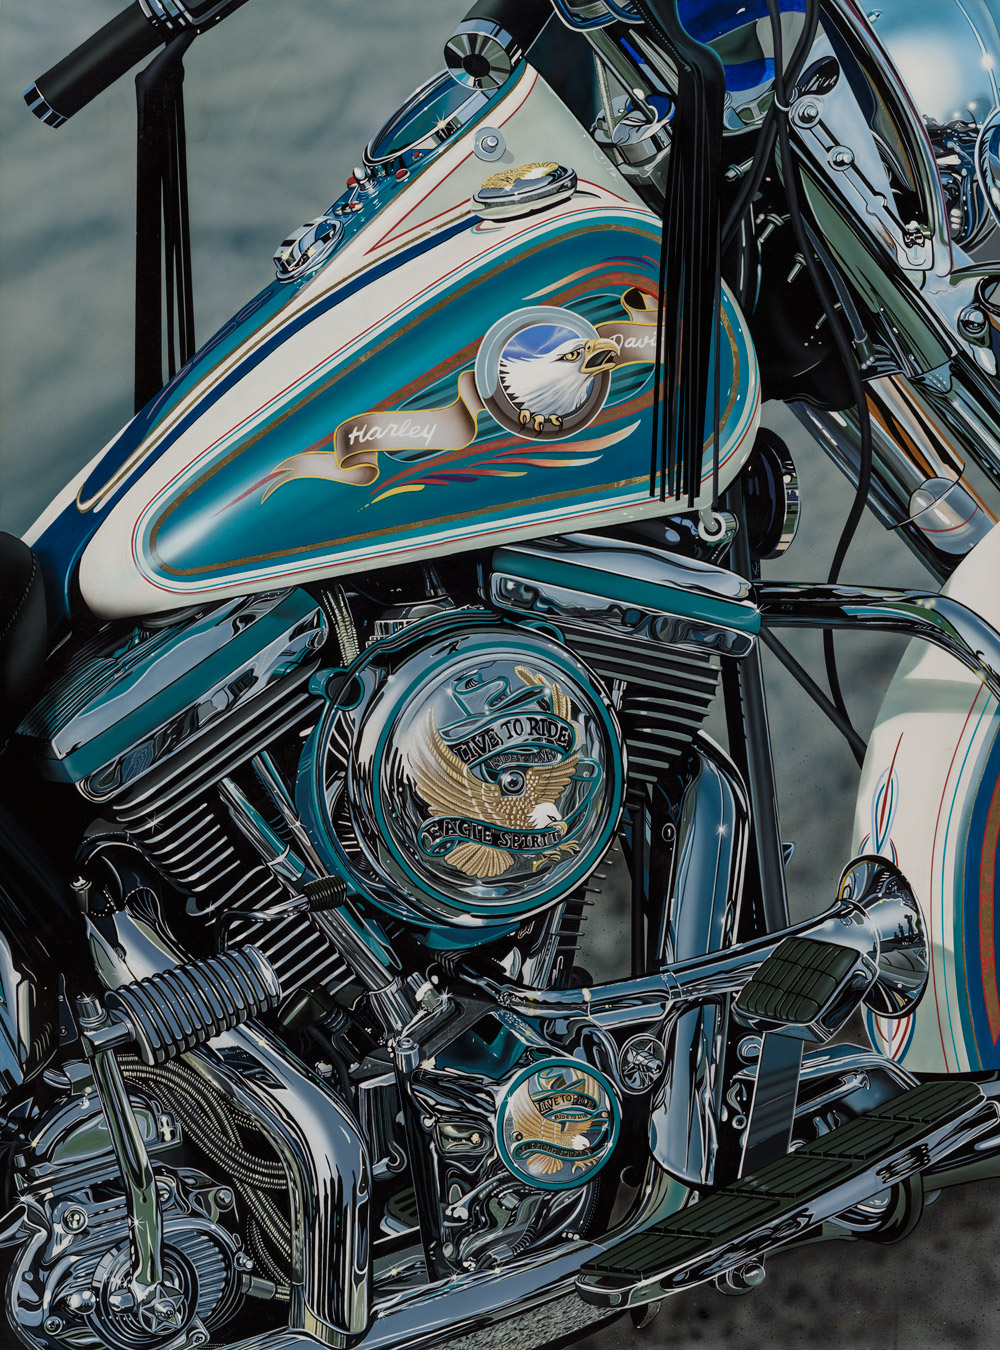 'Live to Ride' by Scott Jacobs.